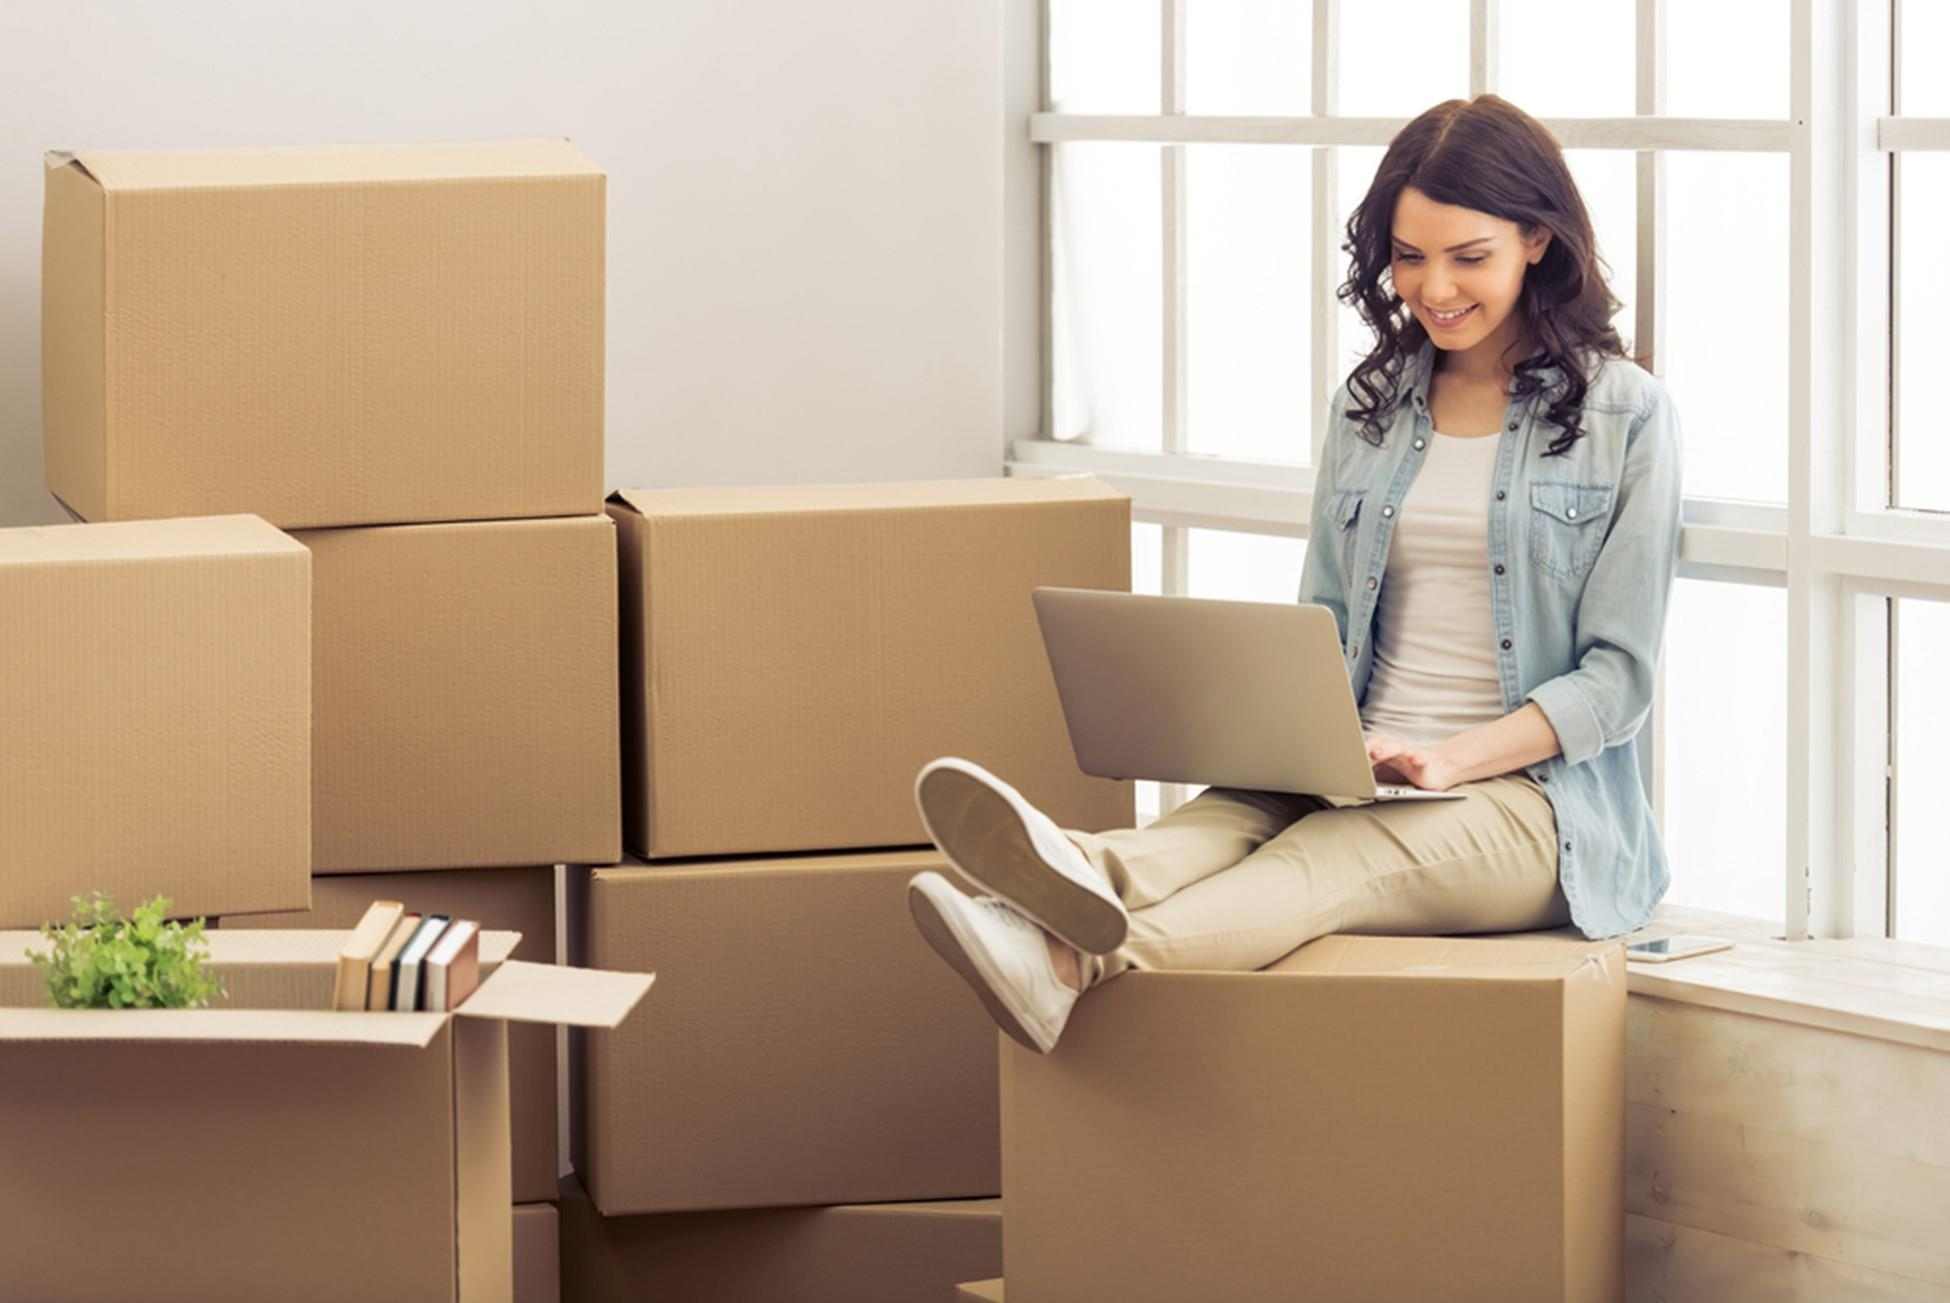 woman moving sitting on boxes